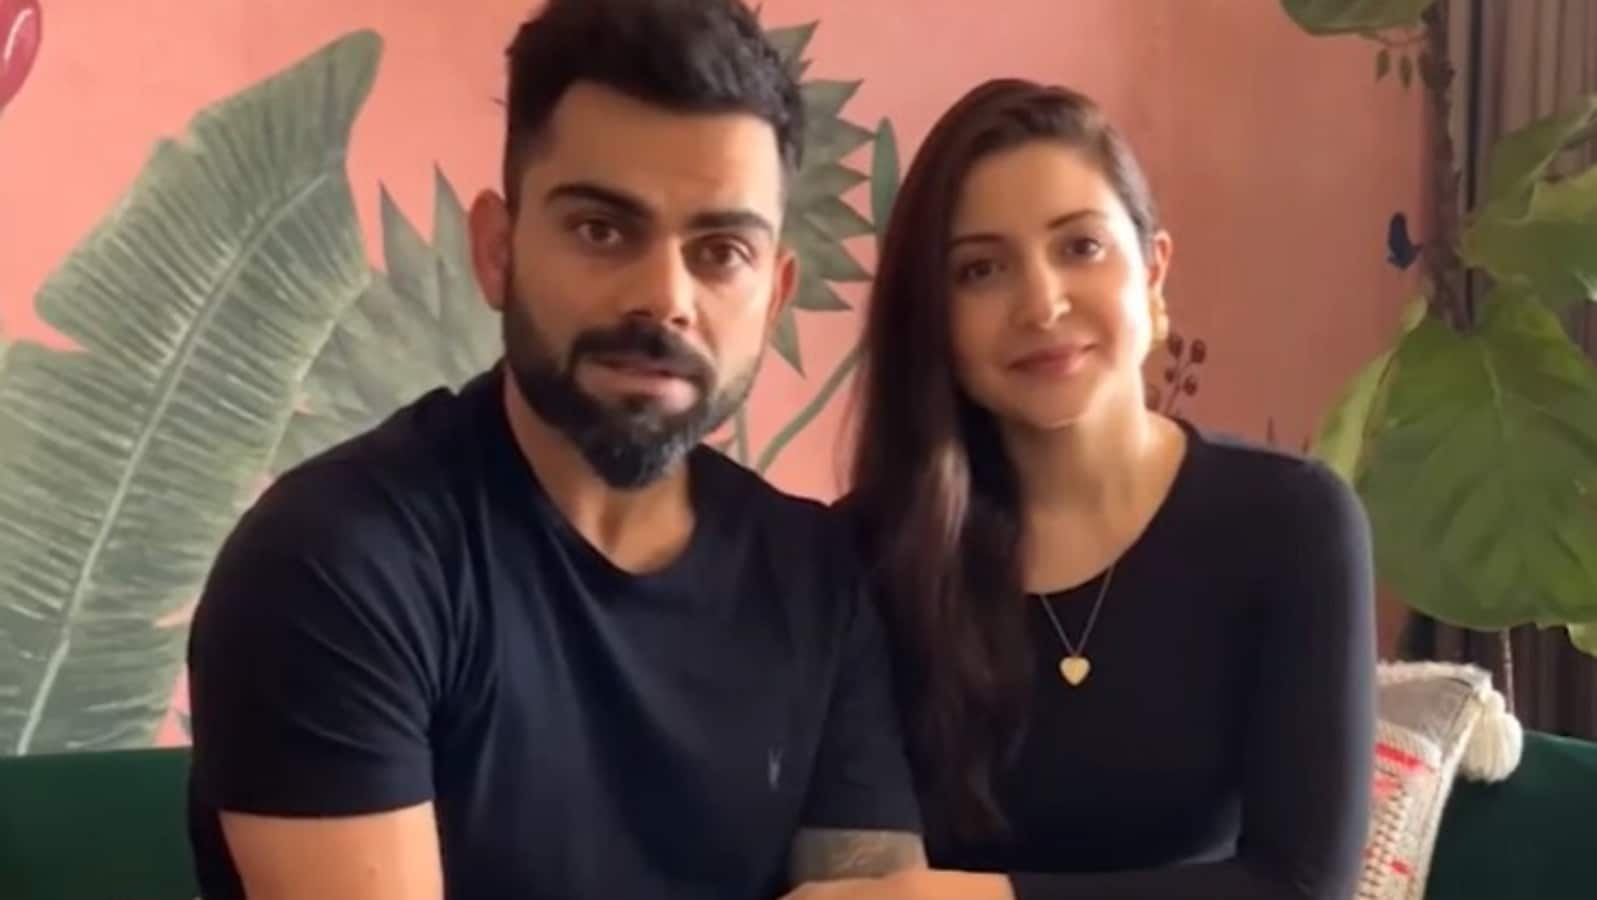 Anushka Sharma blushes as Virat Kohli sticks his tongue out at her in old  behind-the-scenes photo from ad shoot | Bollywood - Hindustan Times